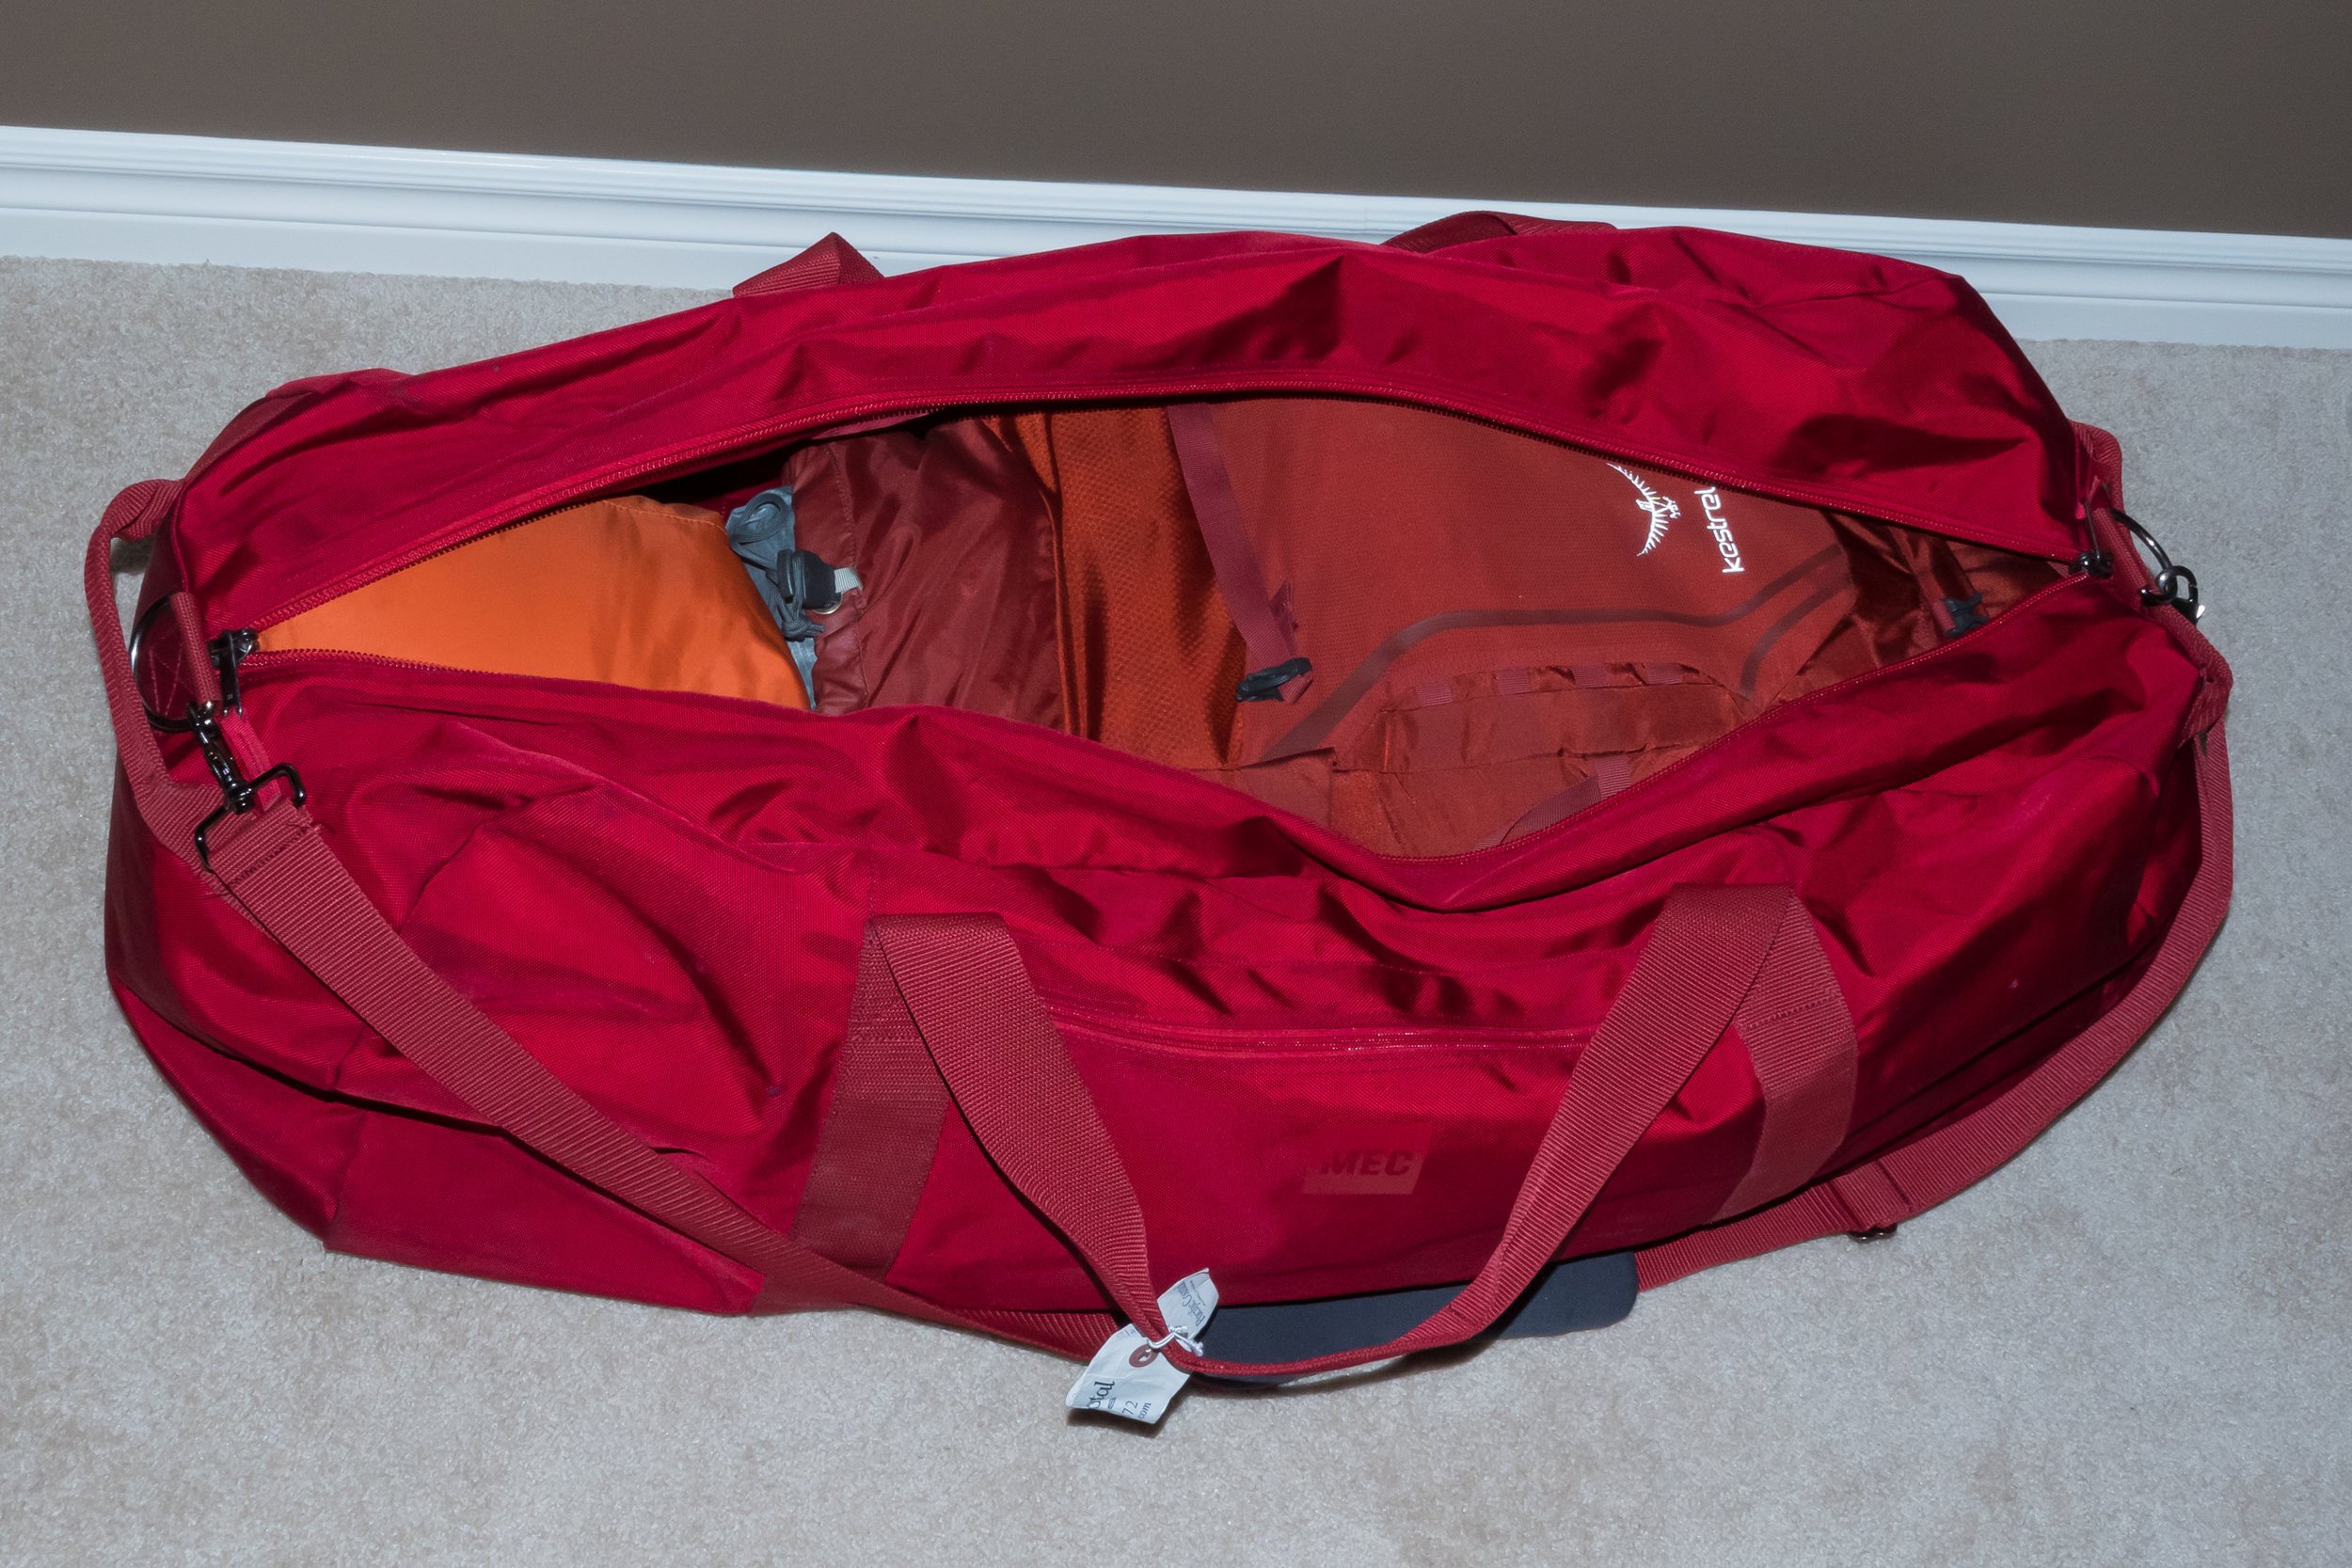 Almost ready! my backpack and sleeping bag are in. Trail shoes, tent poles, a tripod and a small toiletry bag get crammed in the remaining space.